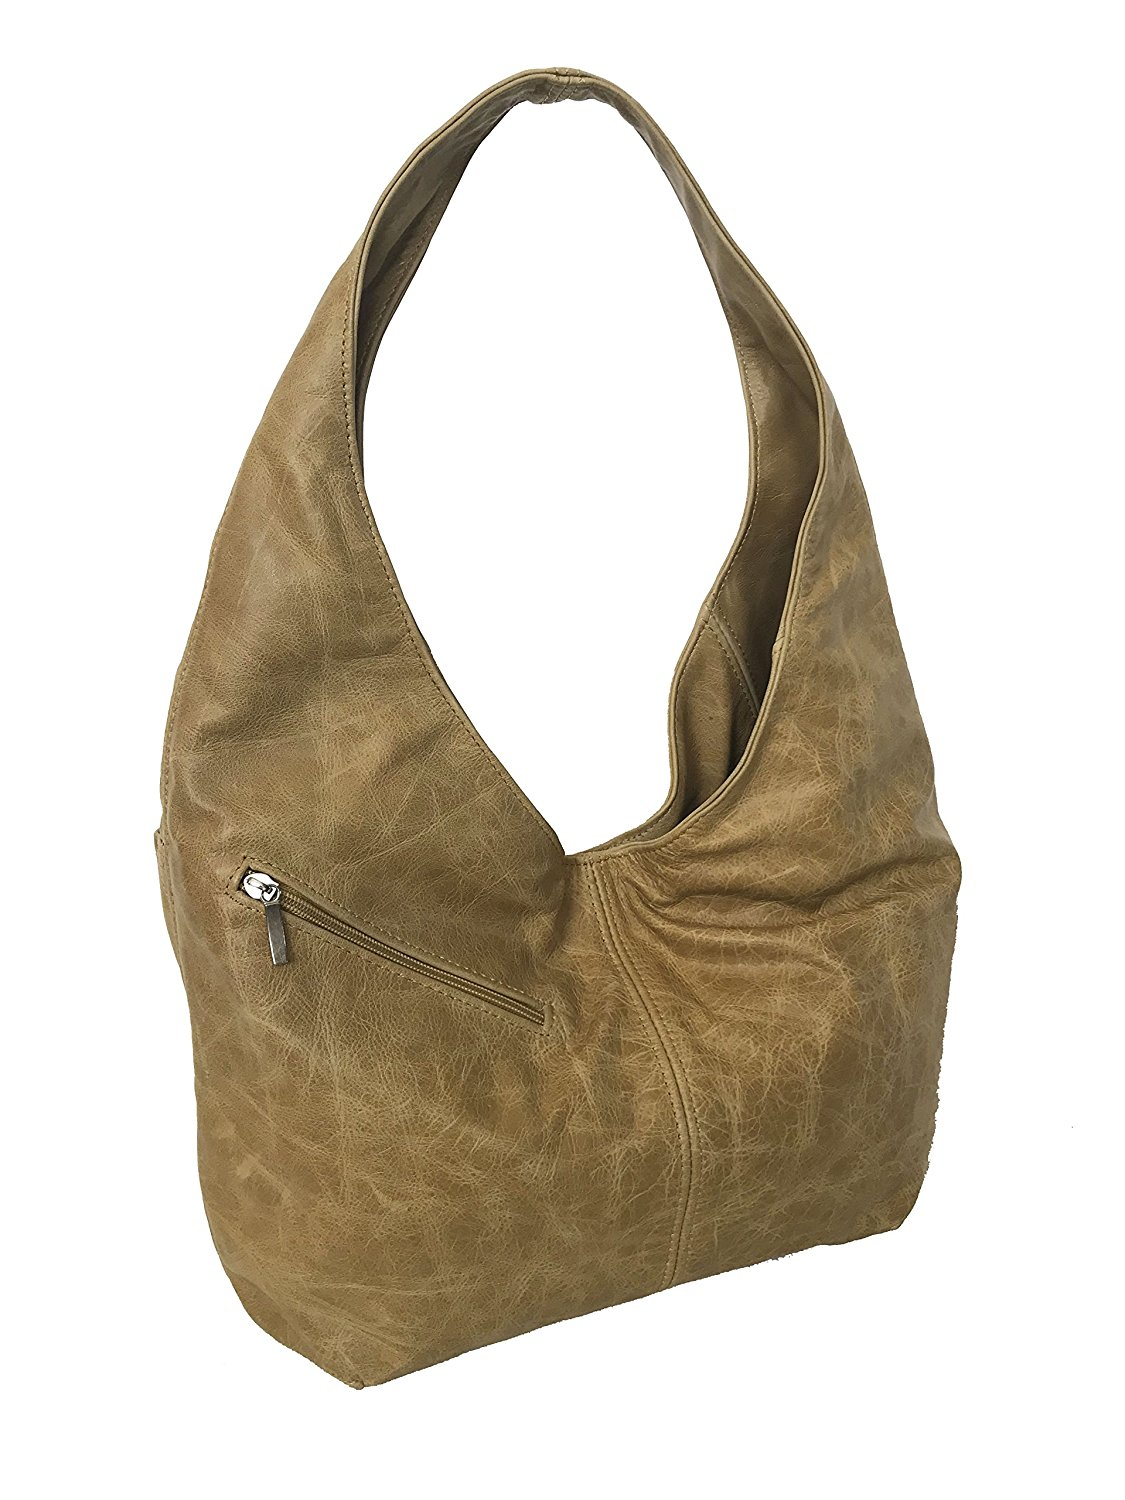 b37f13e046ed Get Quotations · Fgalaze Distressed Camel Leather Hobo Bag w Pockets